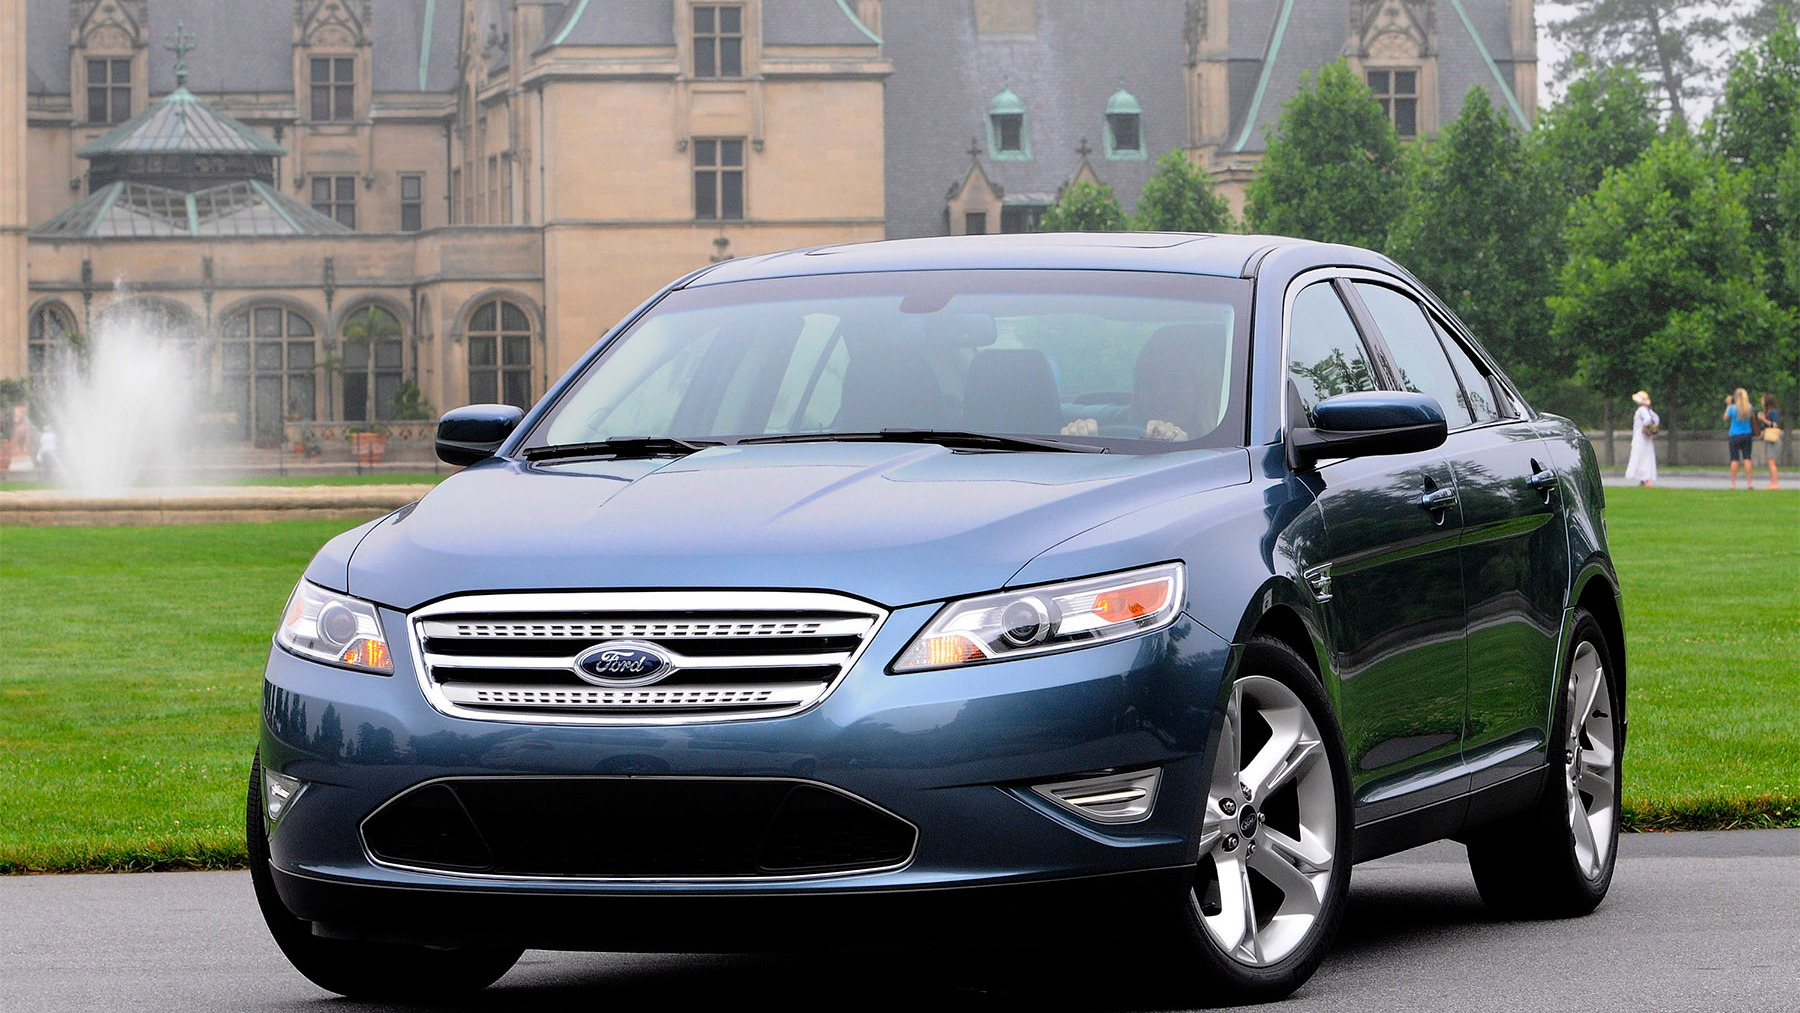 2010 ford taurus sho photo update june 2009 004